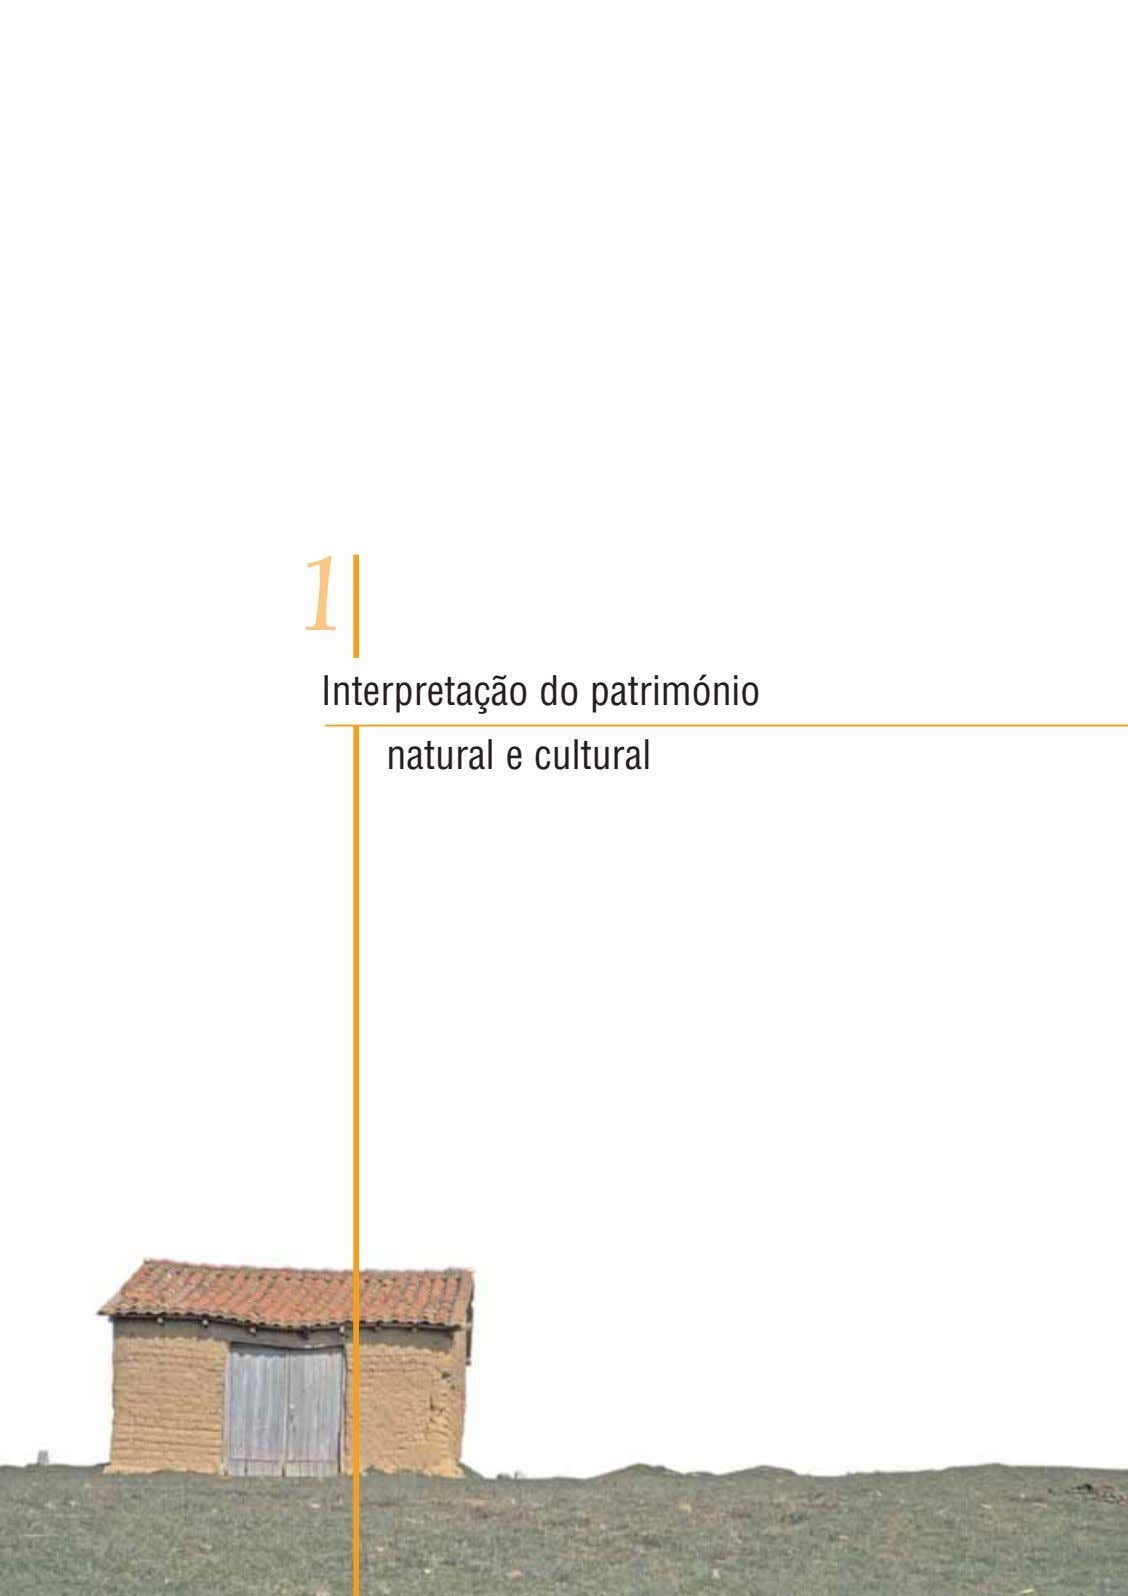 1 Interpretação do património natural e cultural